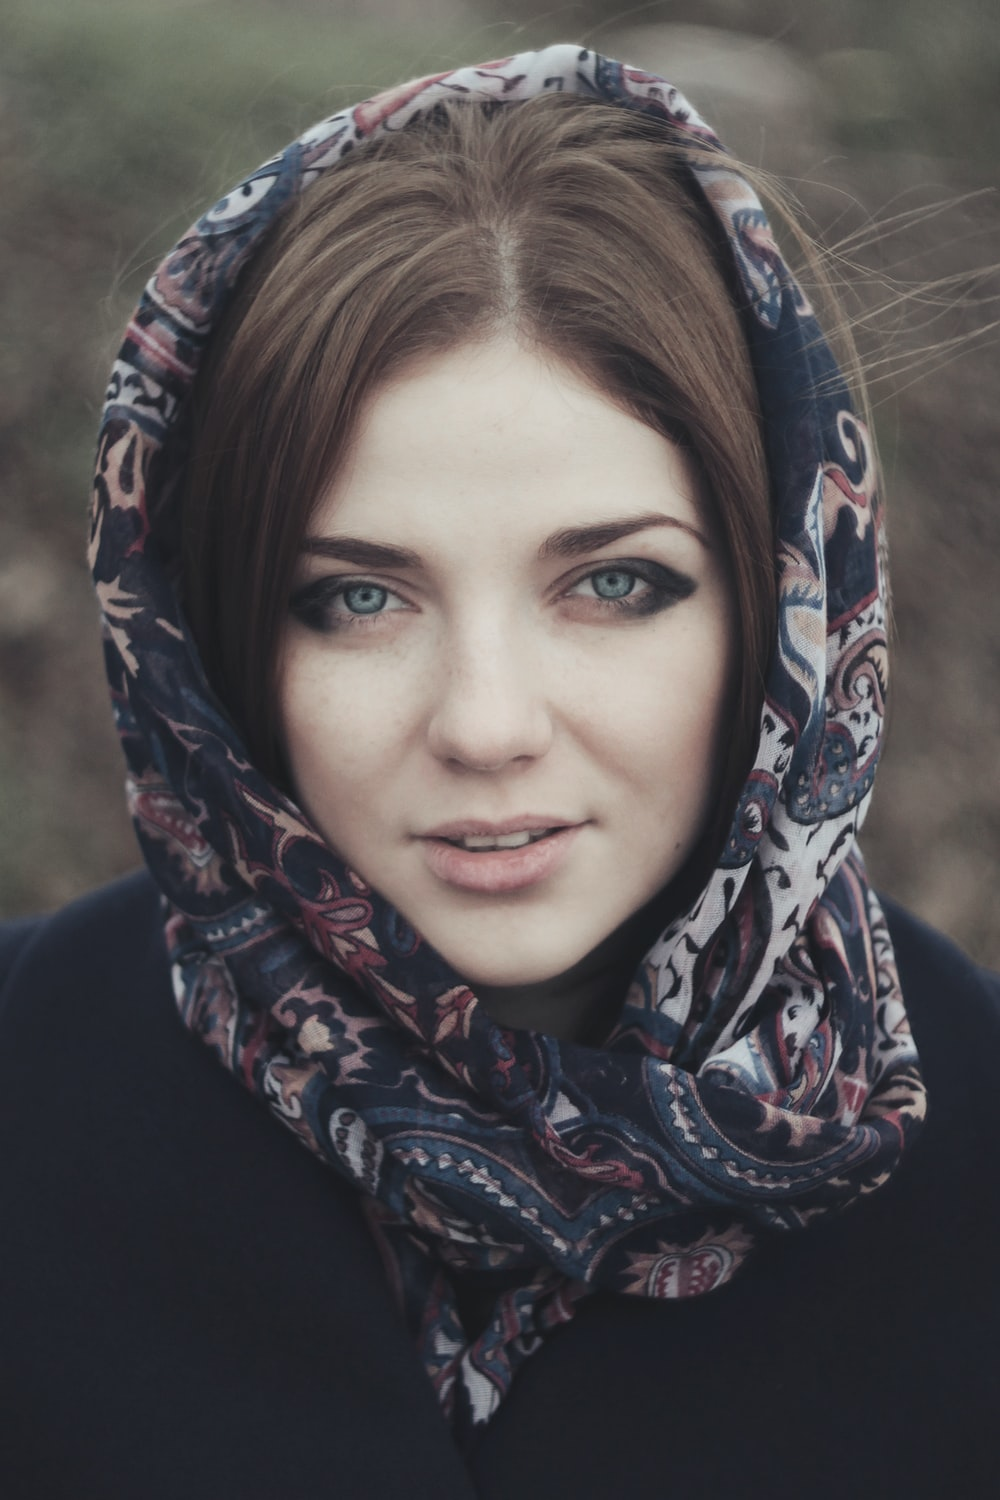 woman with floral hijab headscarf portrait photo